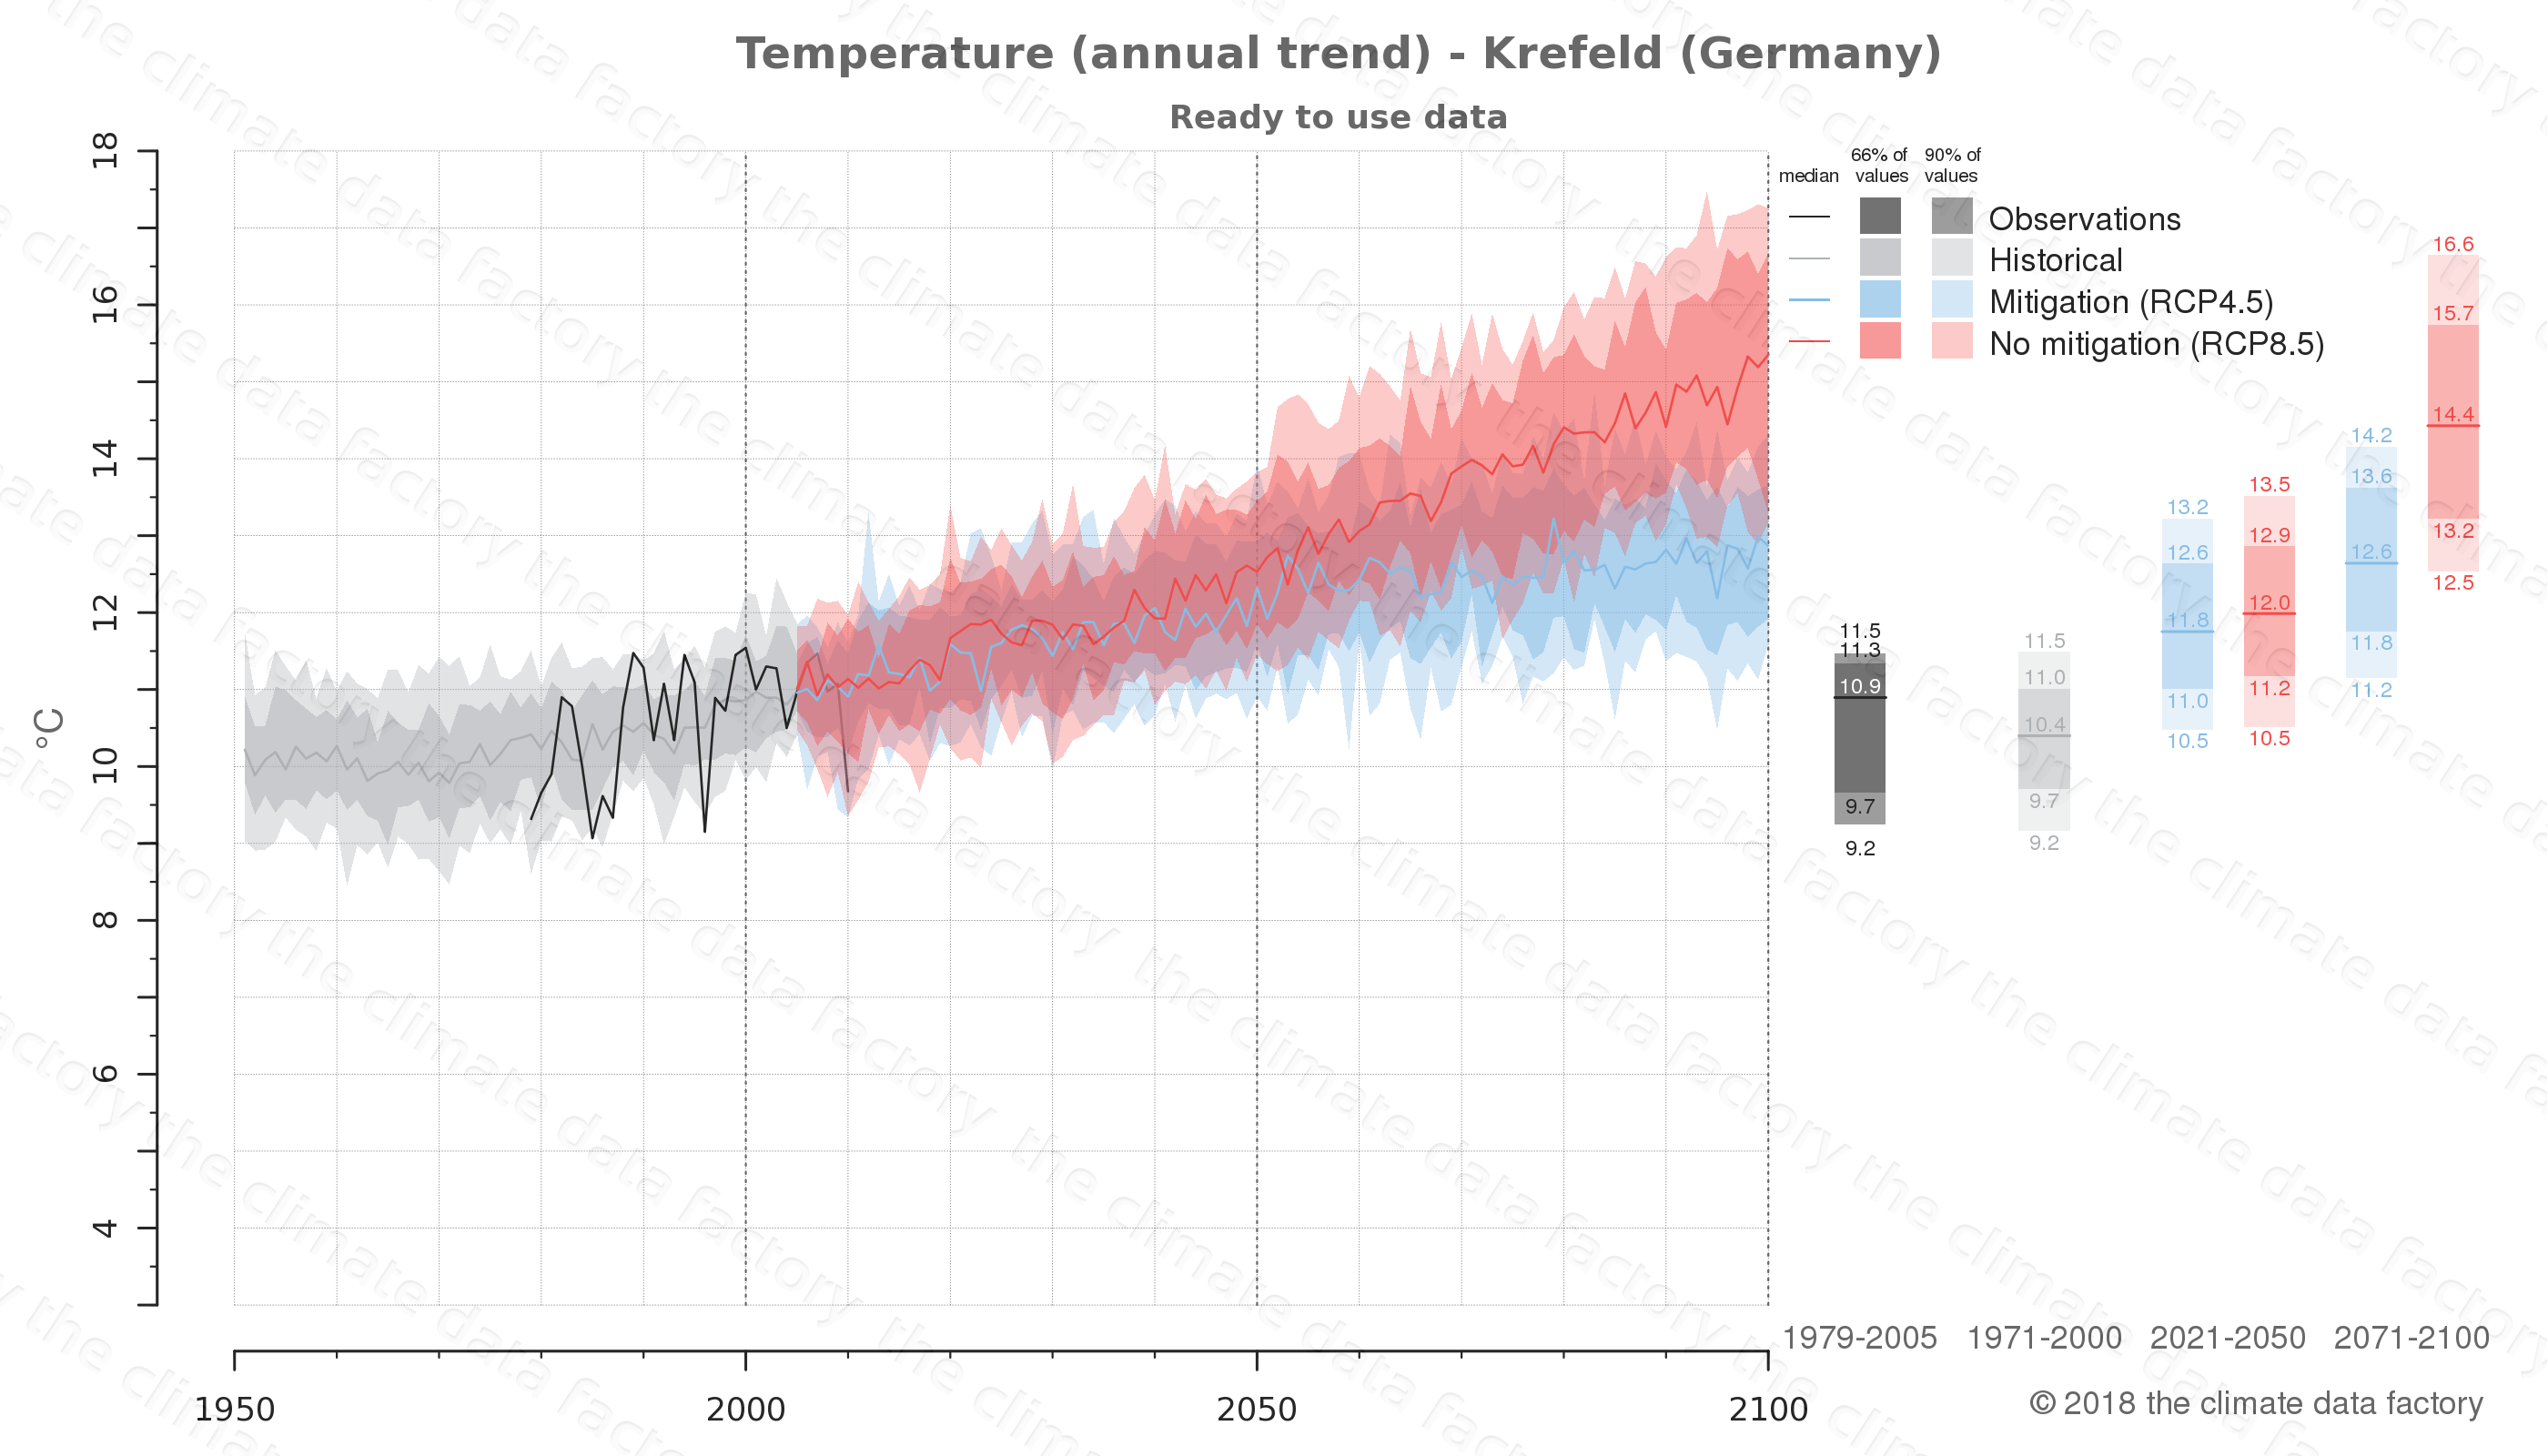 climate change data policy adaptation climate graph city data temperature krefeld germany